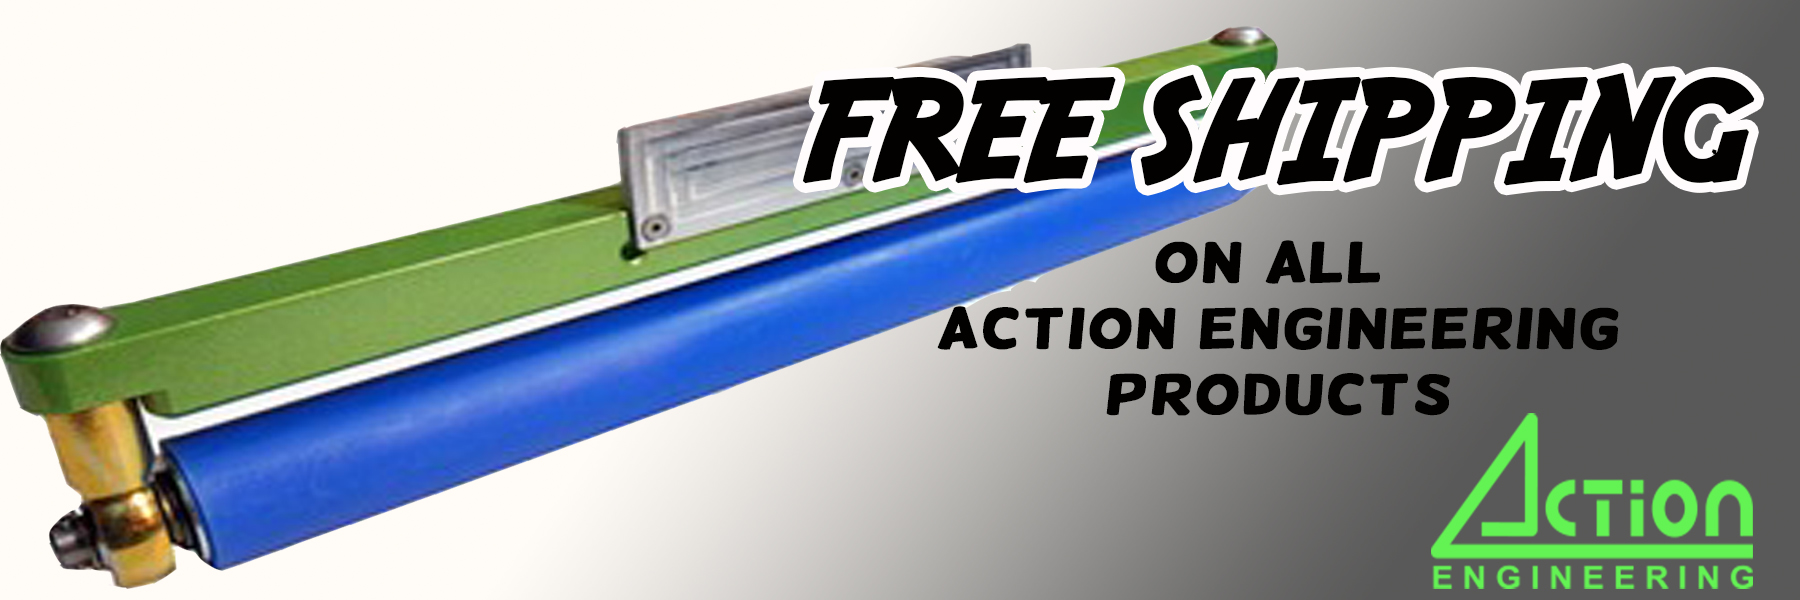 Action Engineering Free Shipping